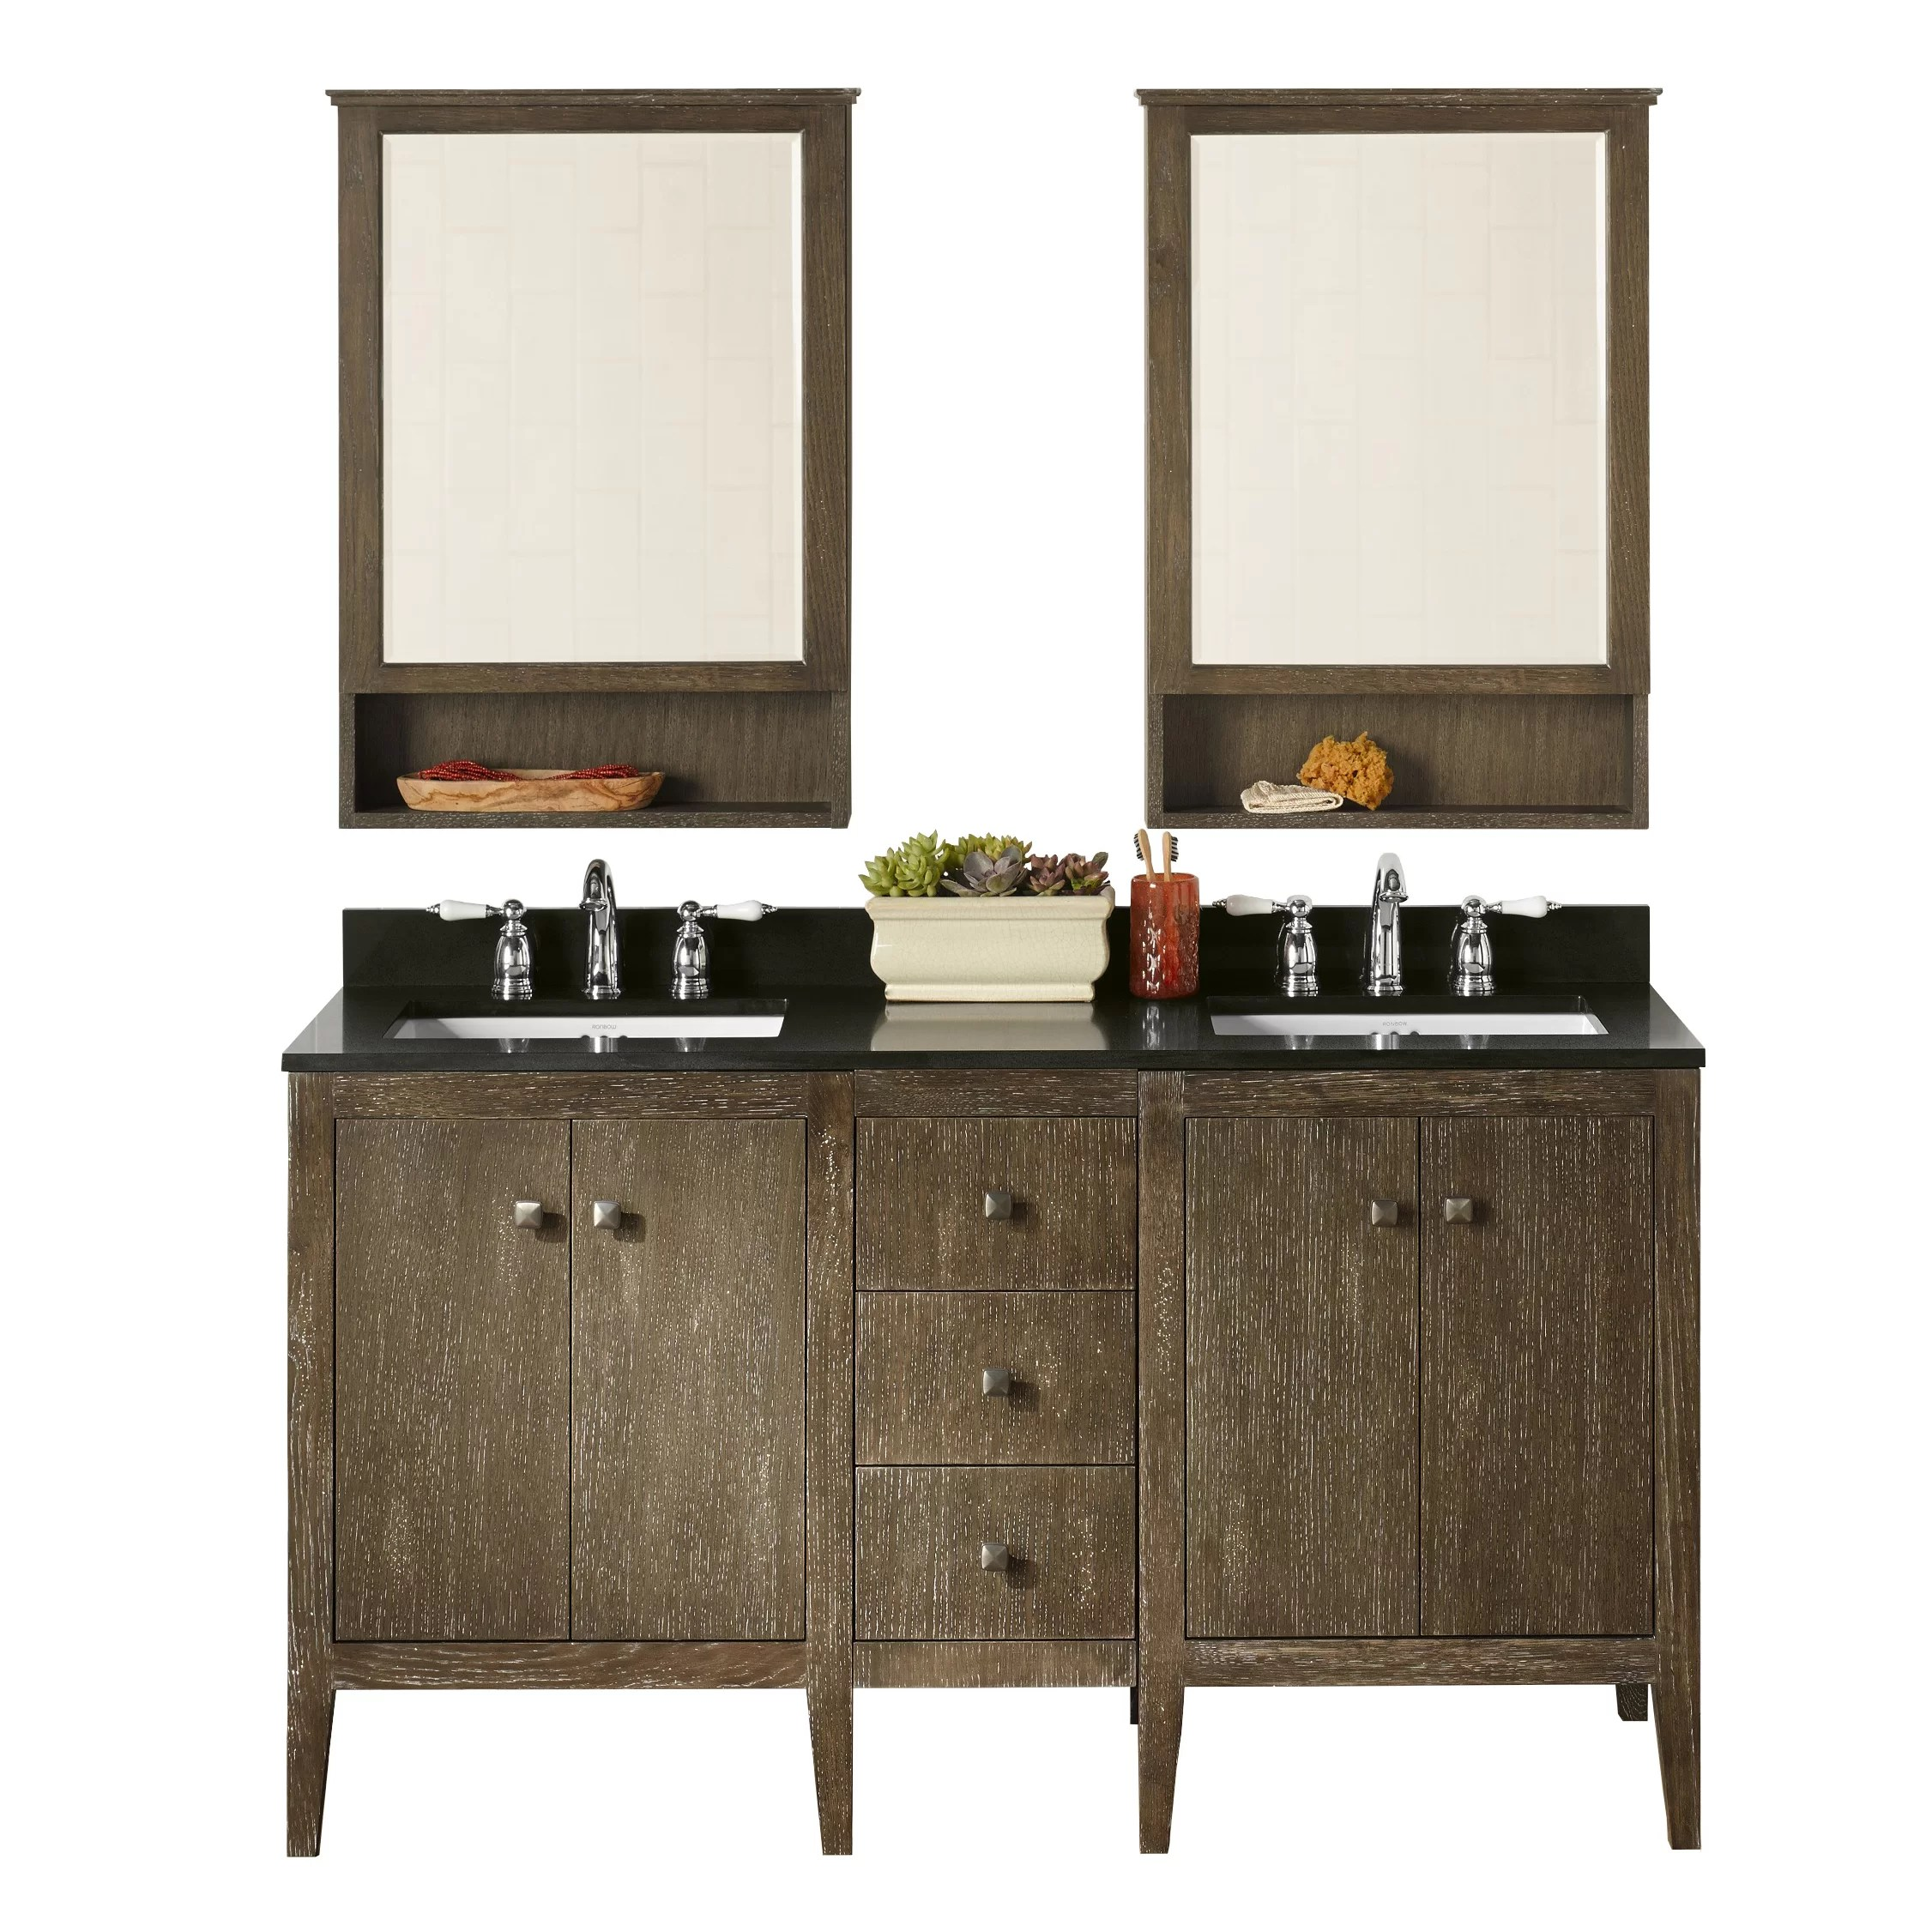 Ronbow Sophie 24 Double Bathroom Vanity Set with Mirror